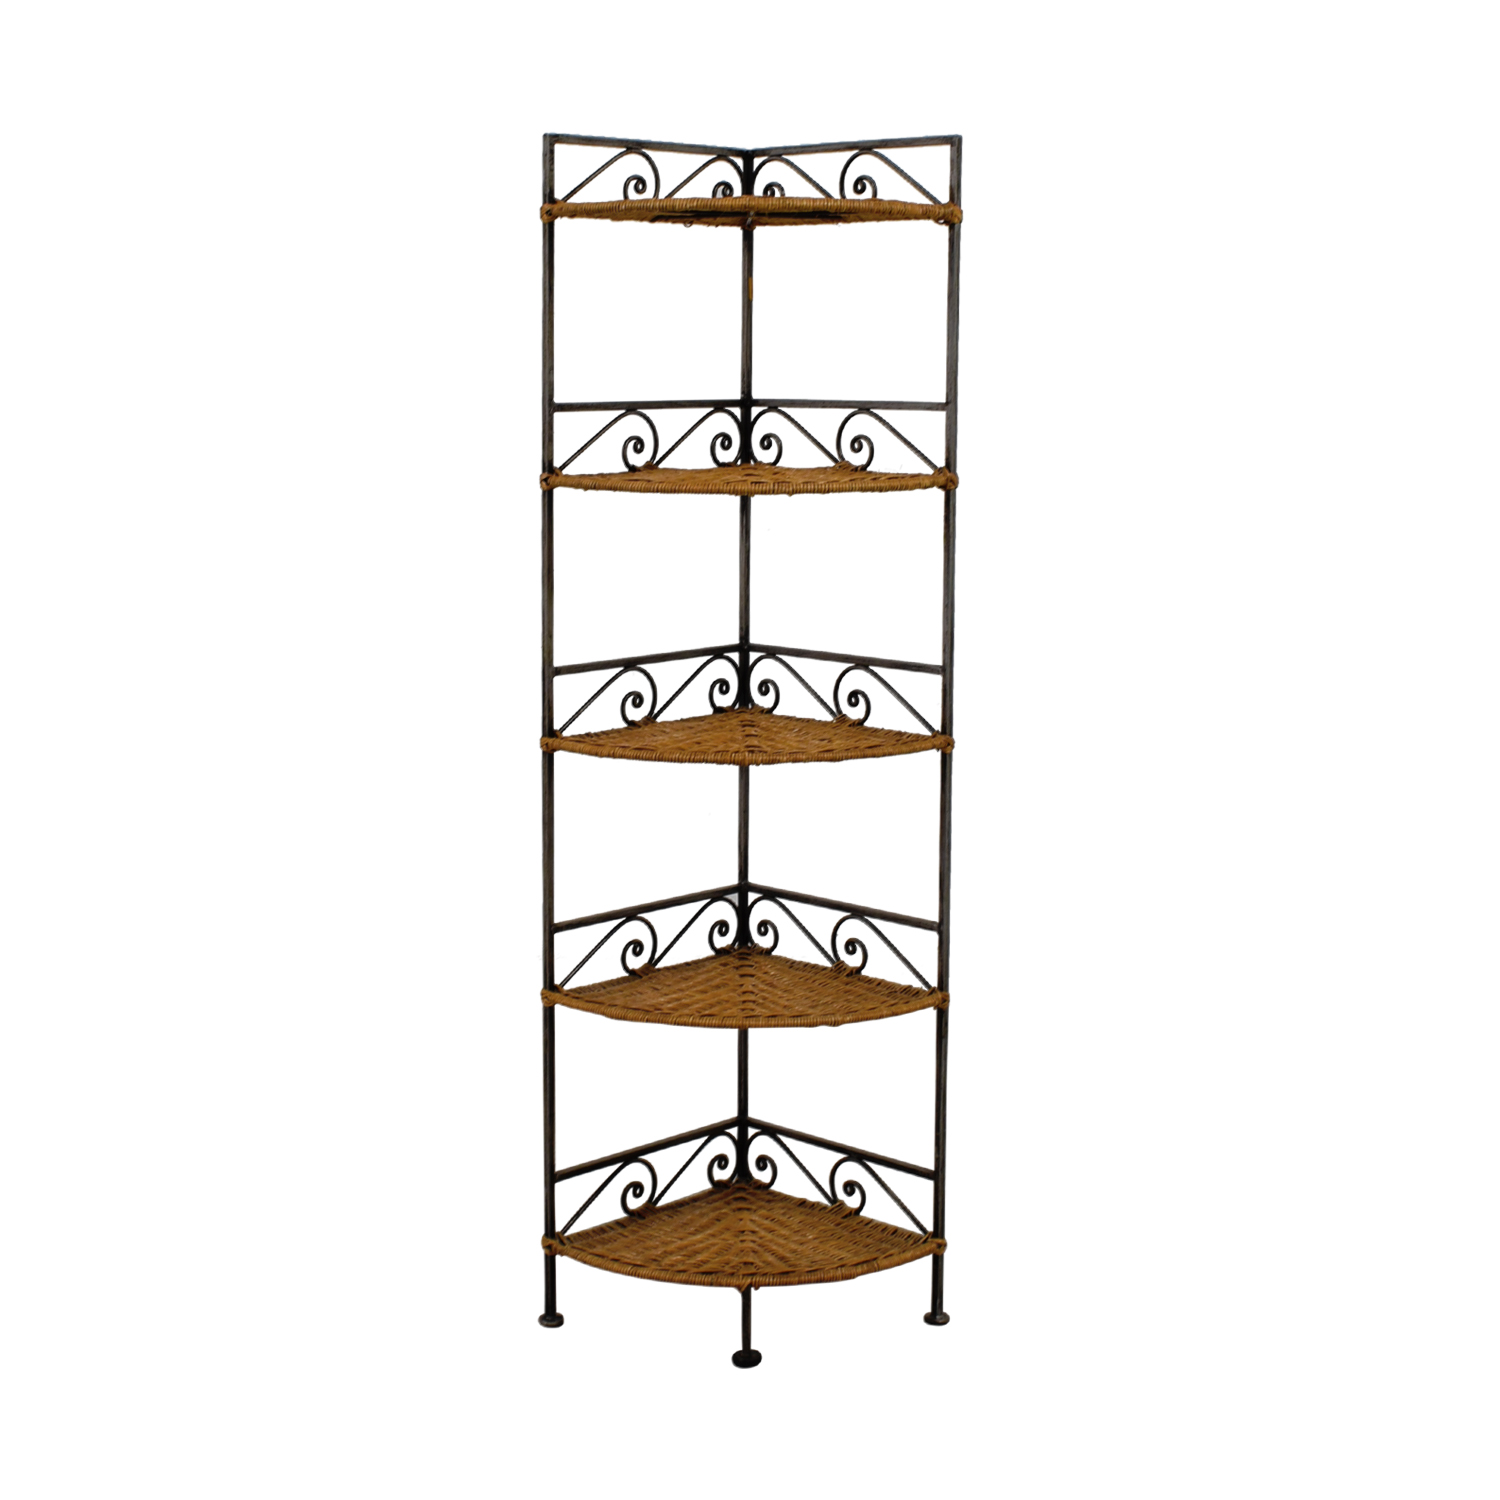 Pier 1 Imports Pier 1 Imports Metal and Wicker Corner Shelves for sale